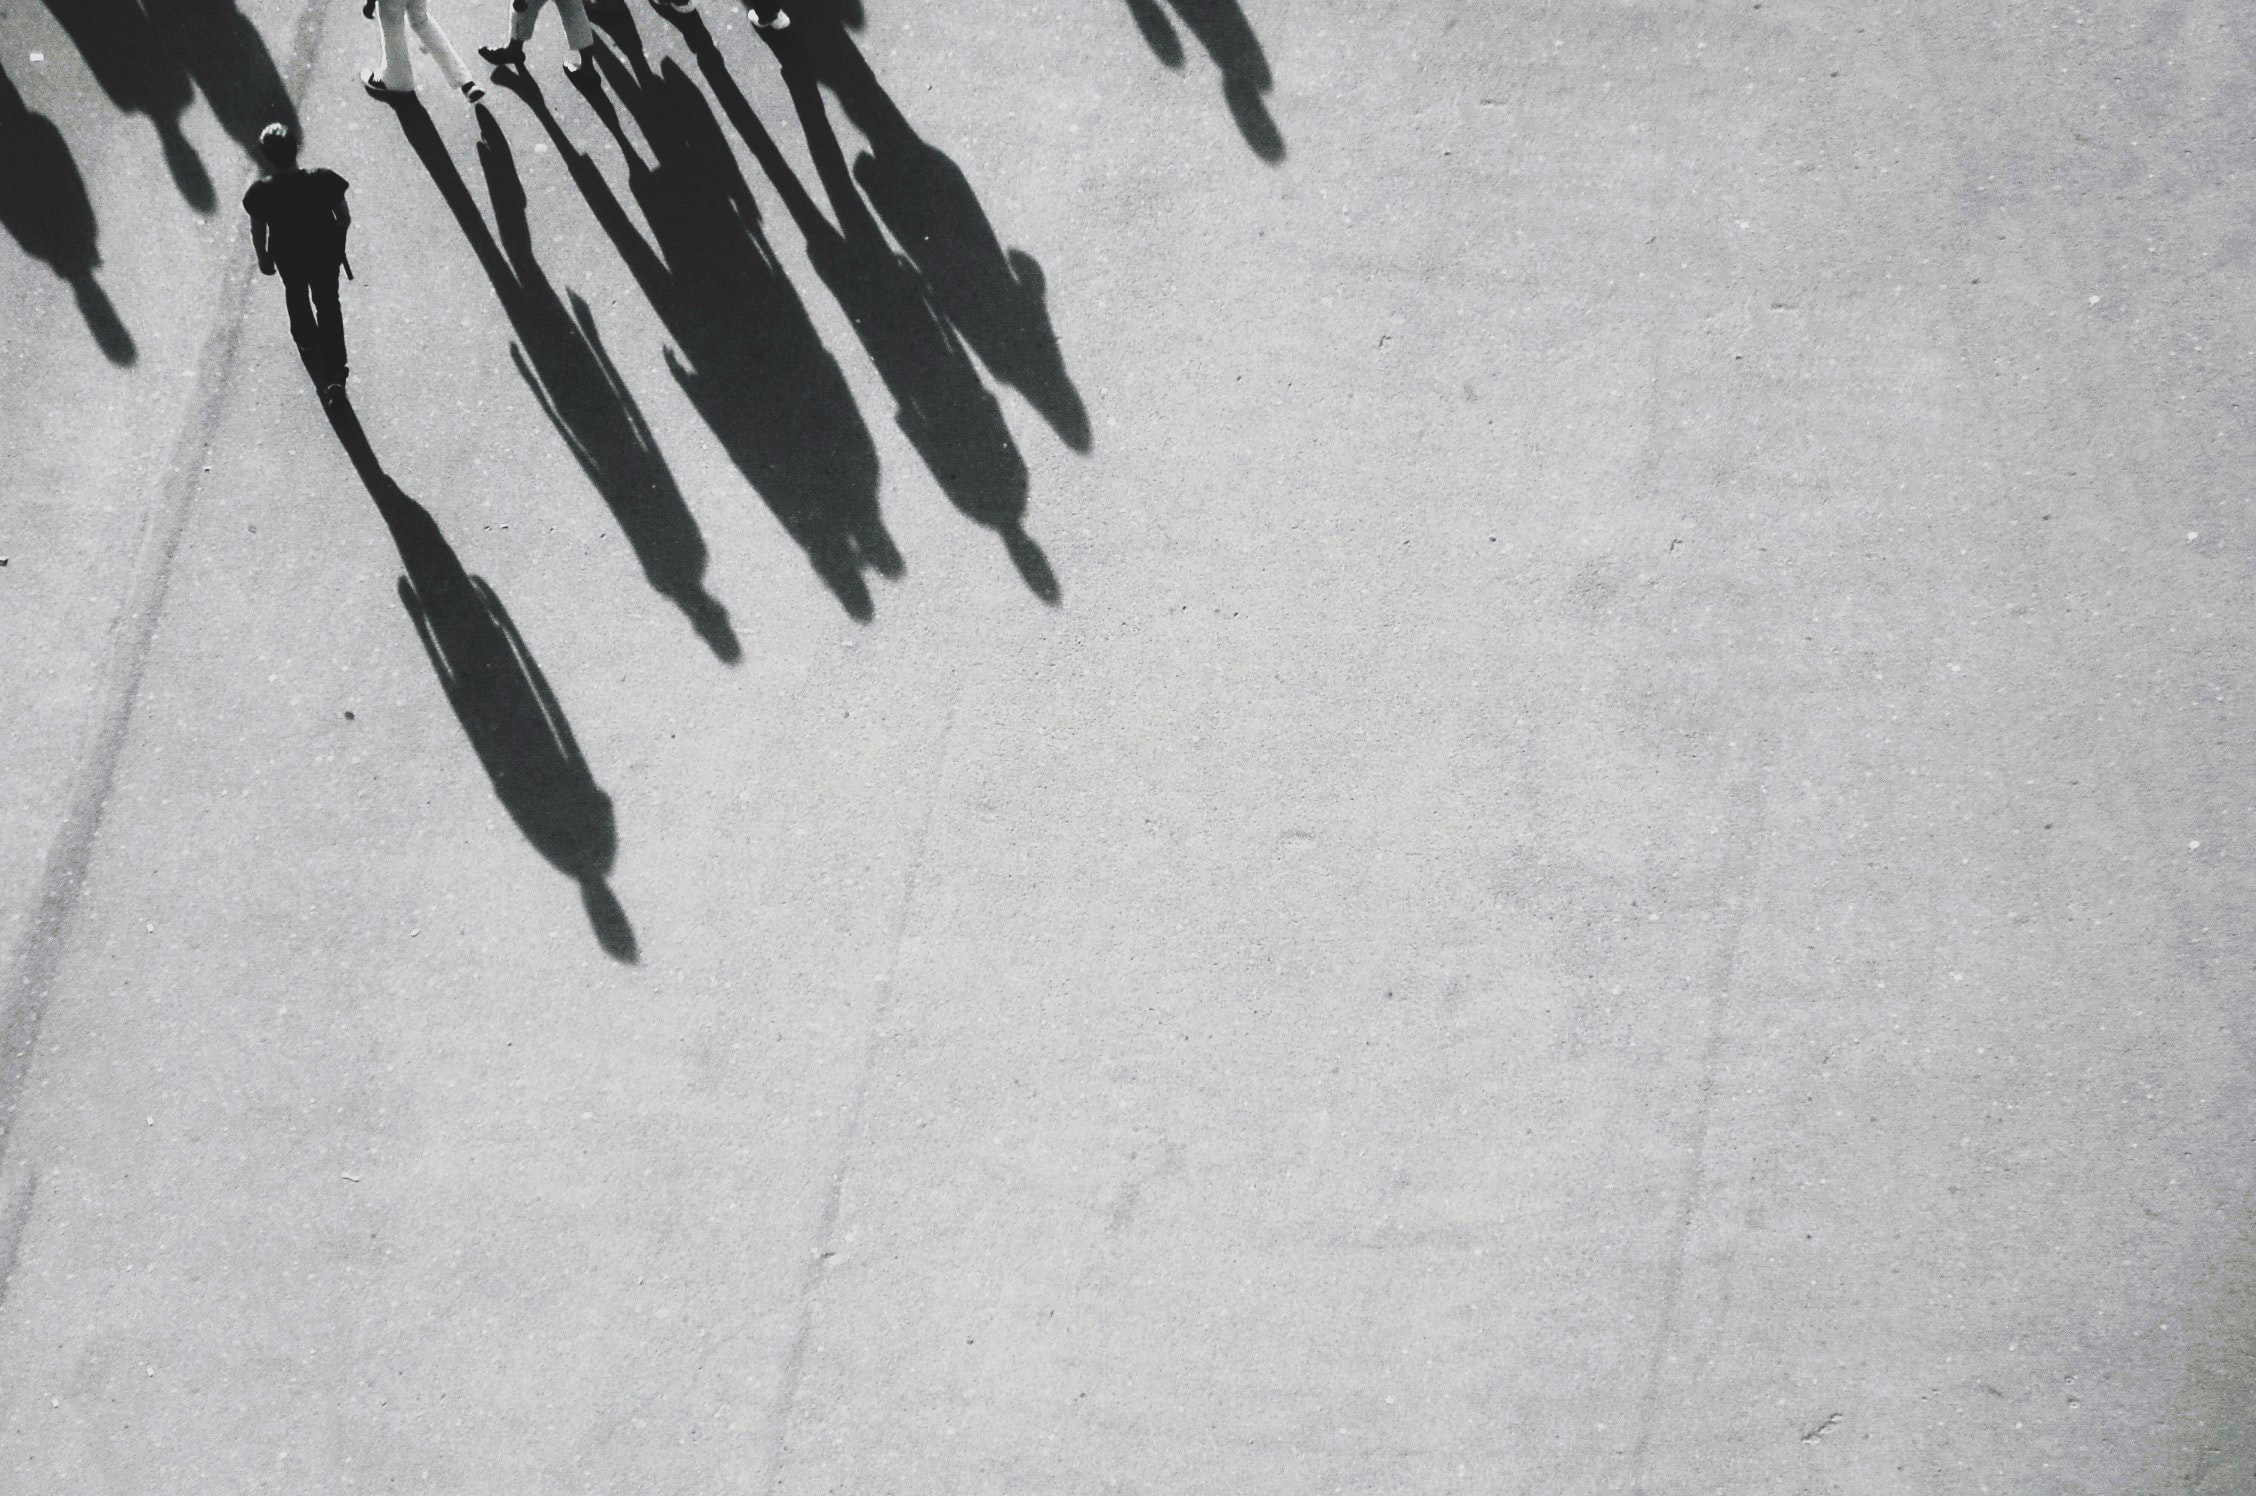 grayscale photography of shadow of people walking